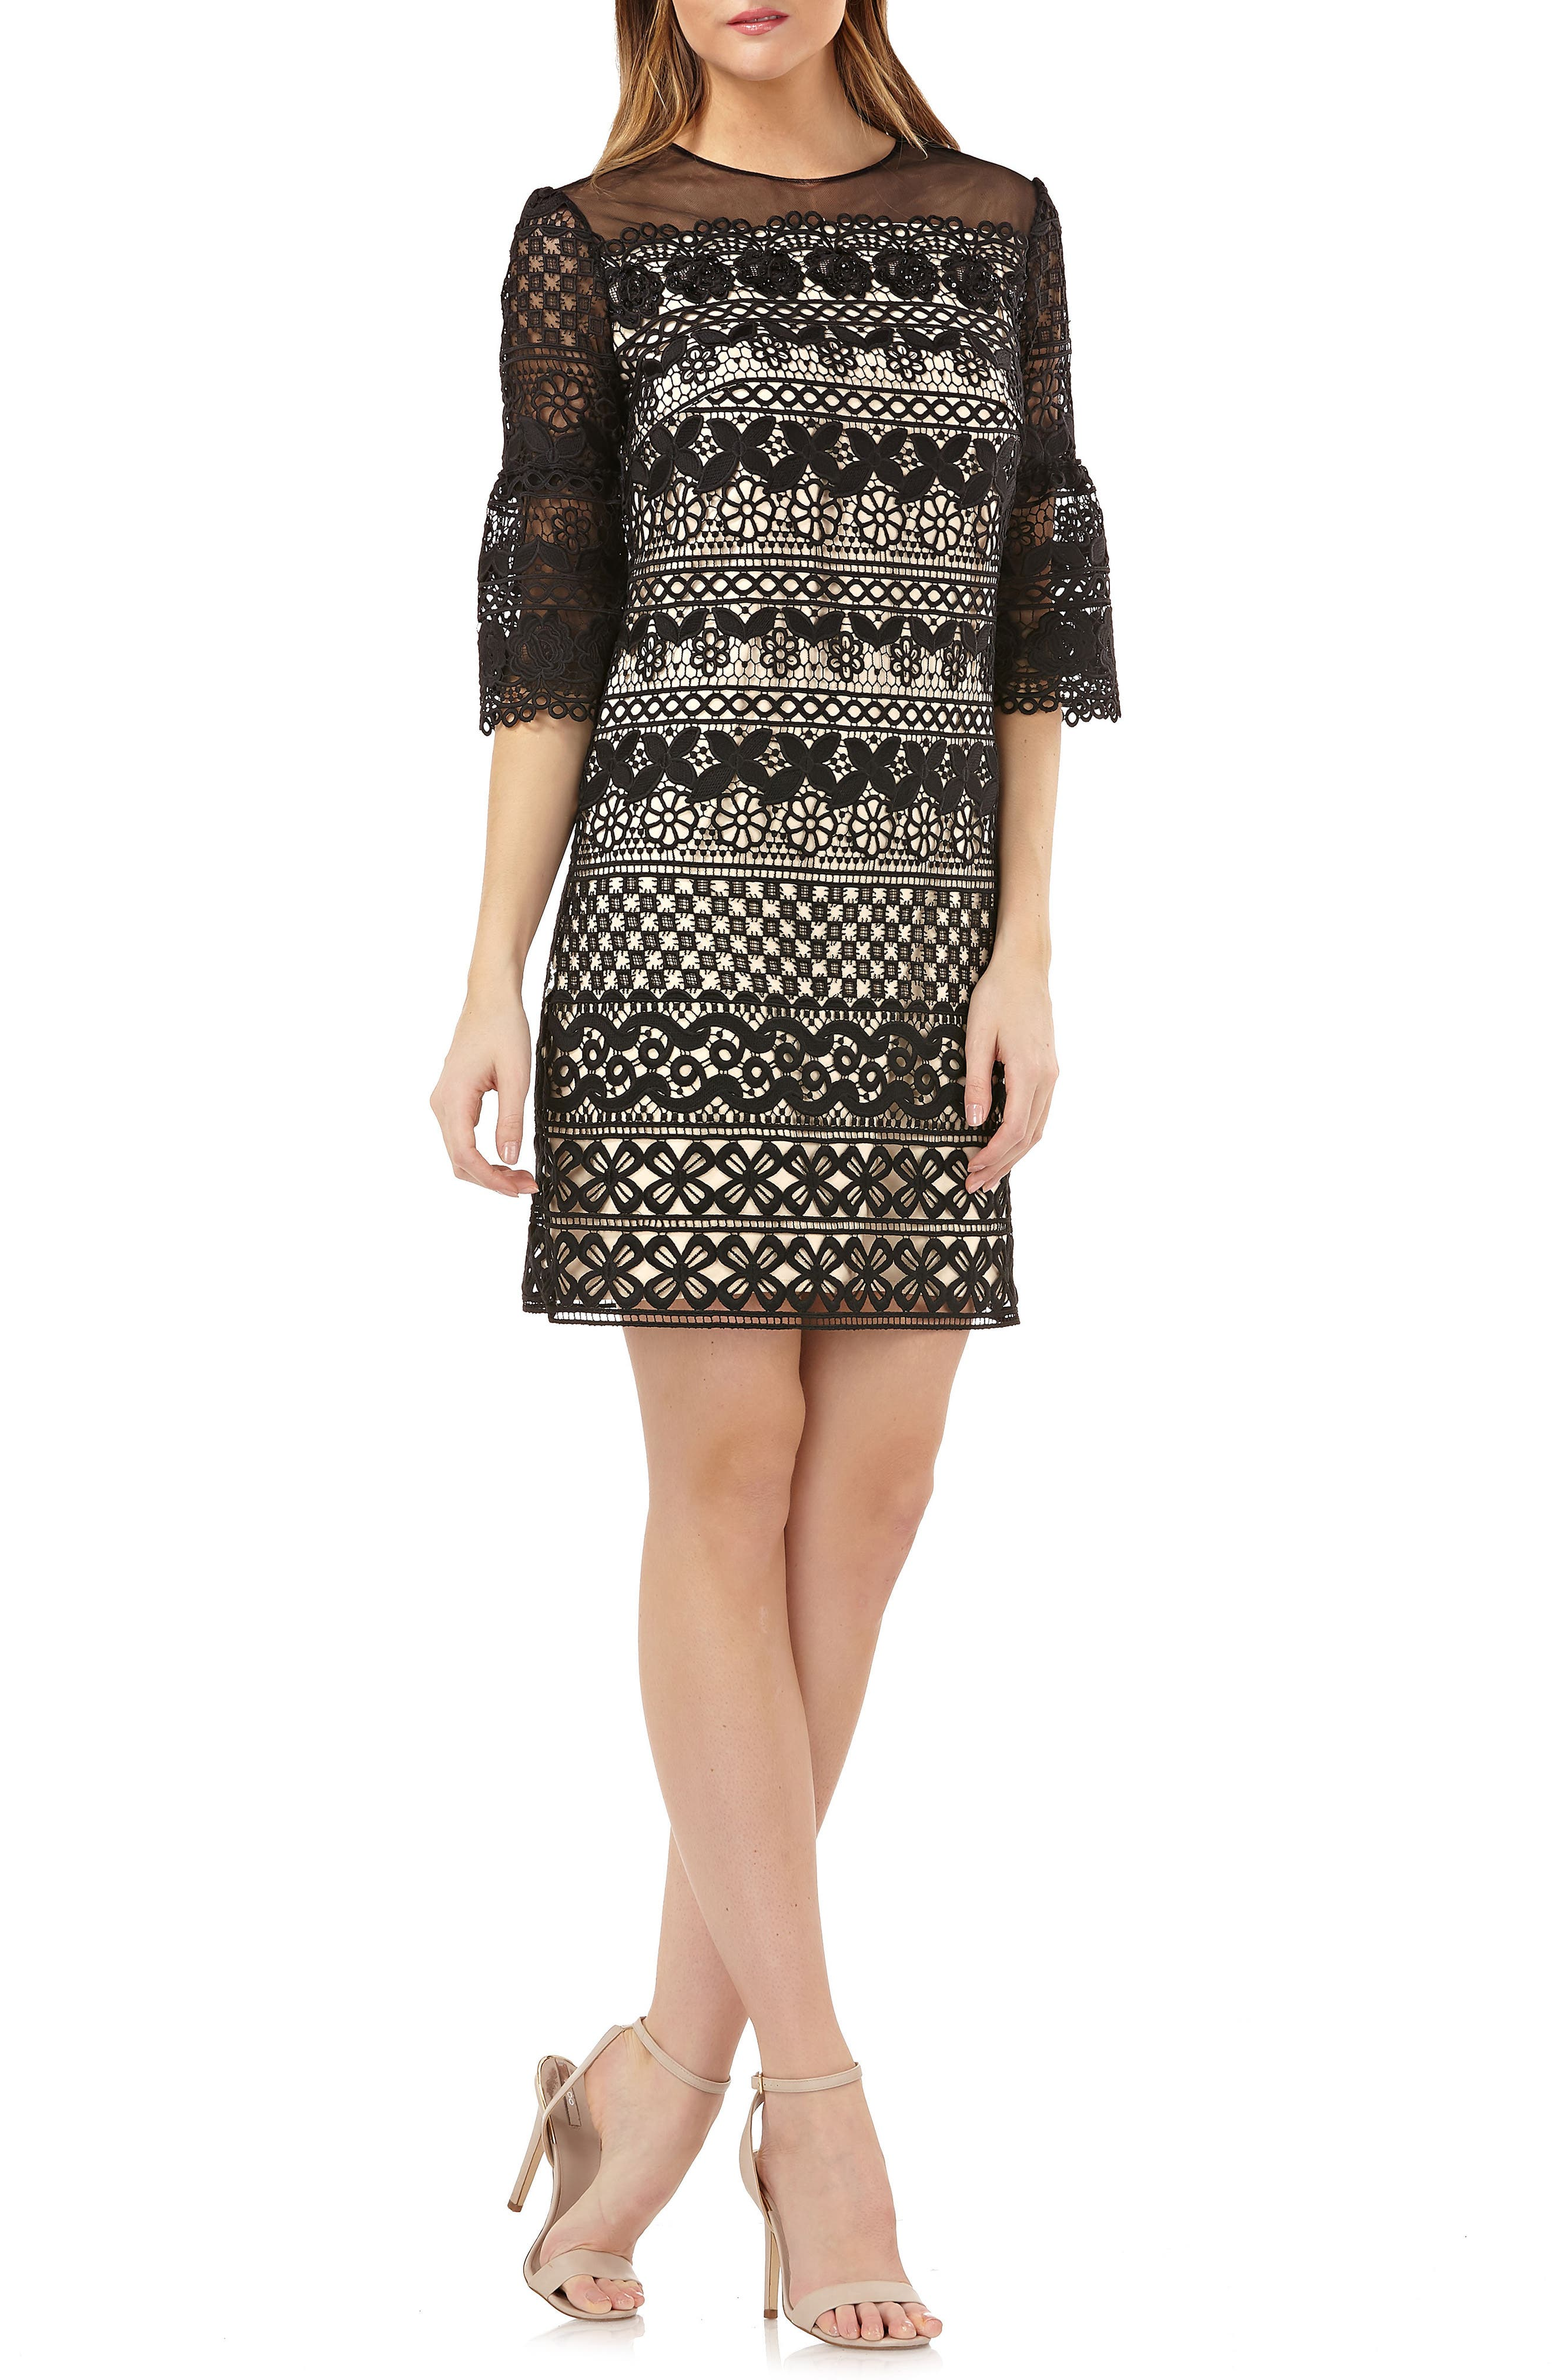 Carmen Marc Valvo Lace Shift Dress,                         Main,                         color, Black Nude